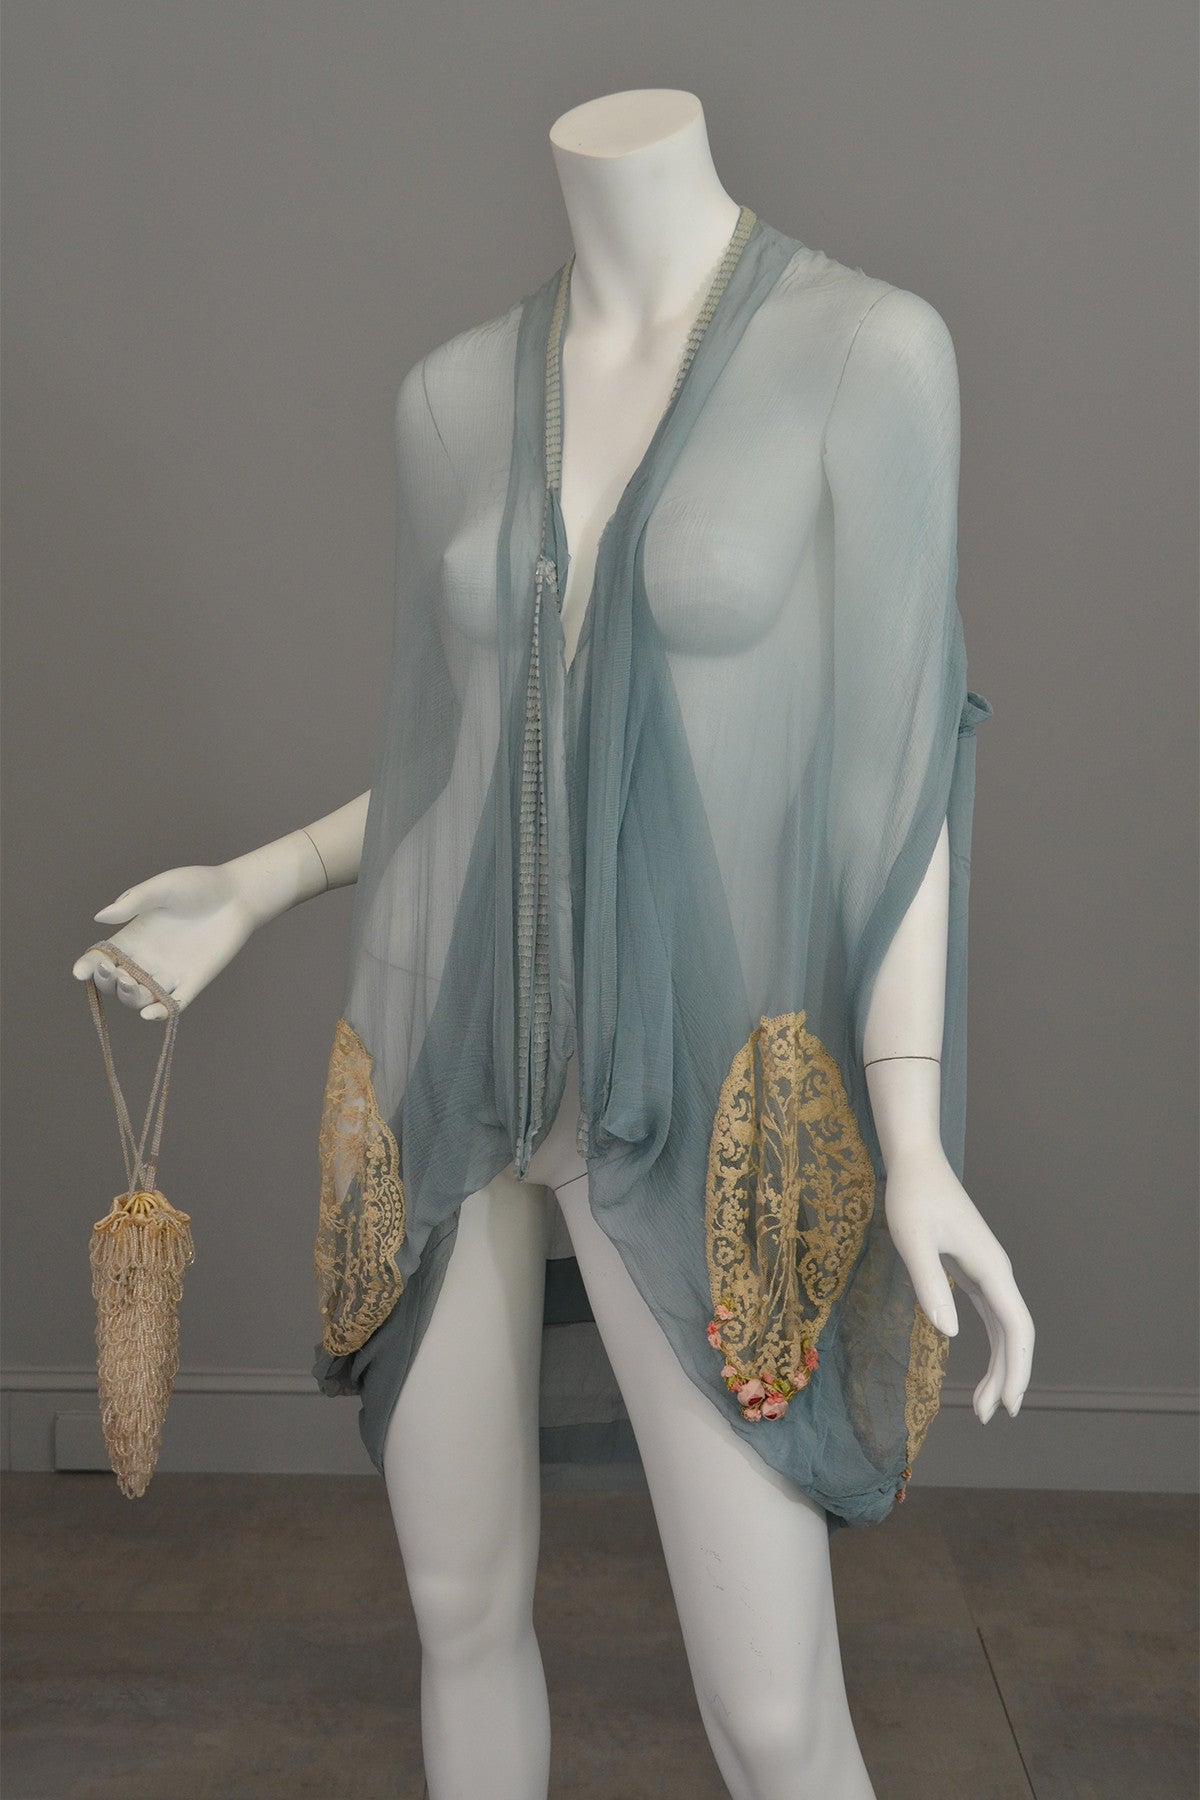 1920s Deco Aqua Blue Sheer Silk Cocoon Duster Vest with Beads, Lace and Flowers